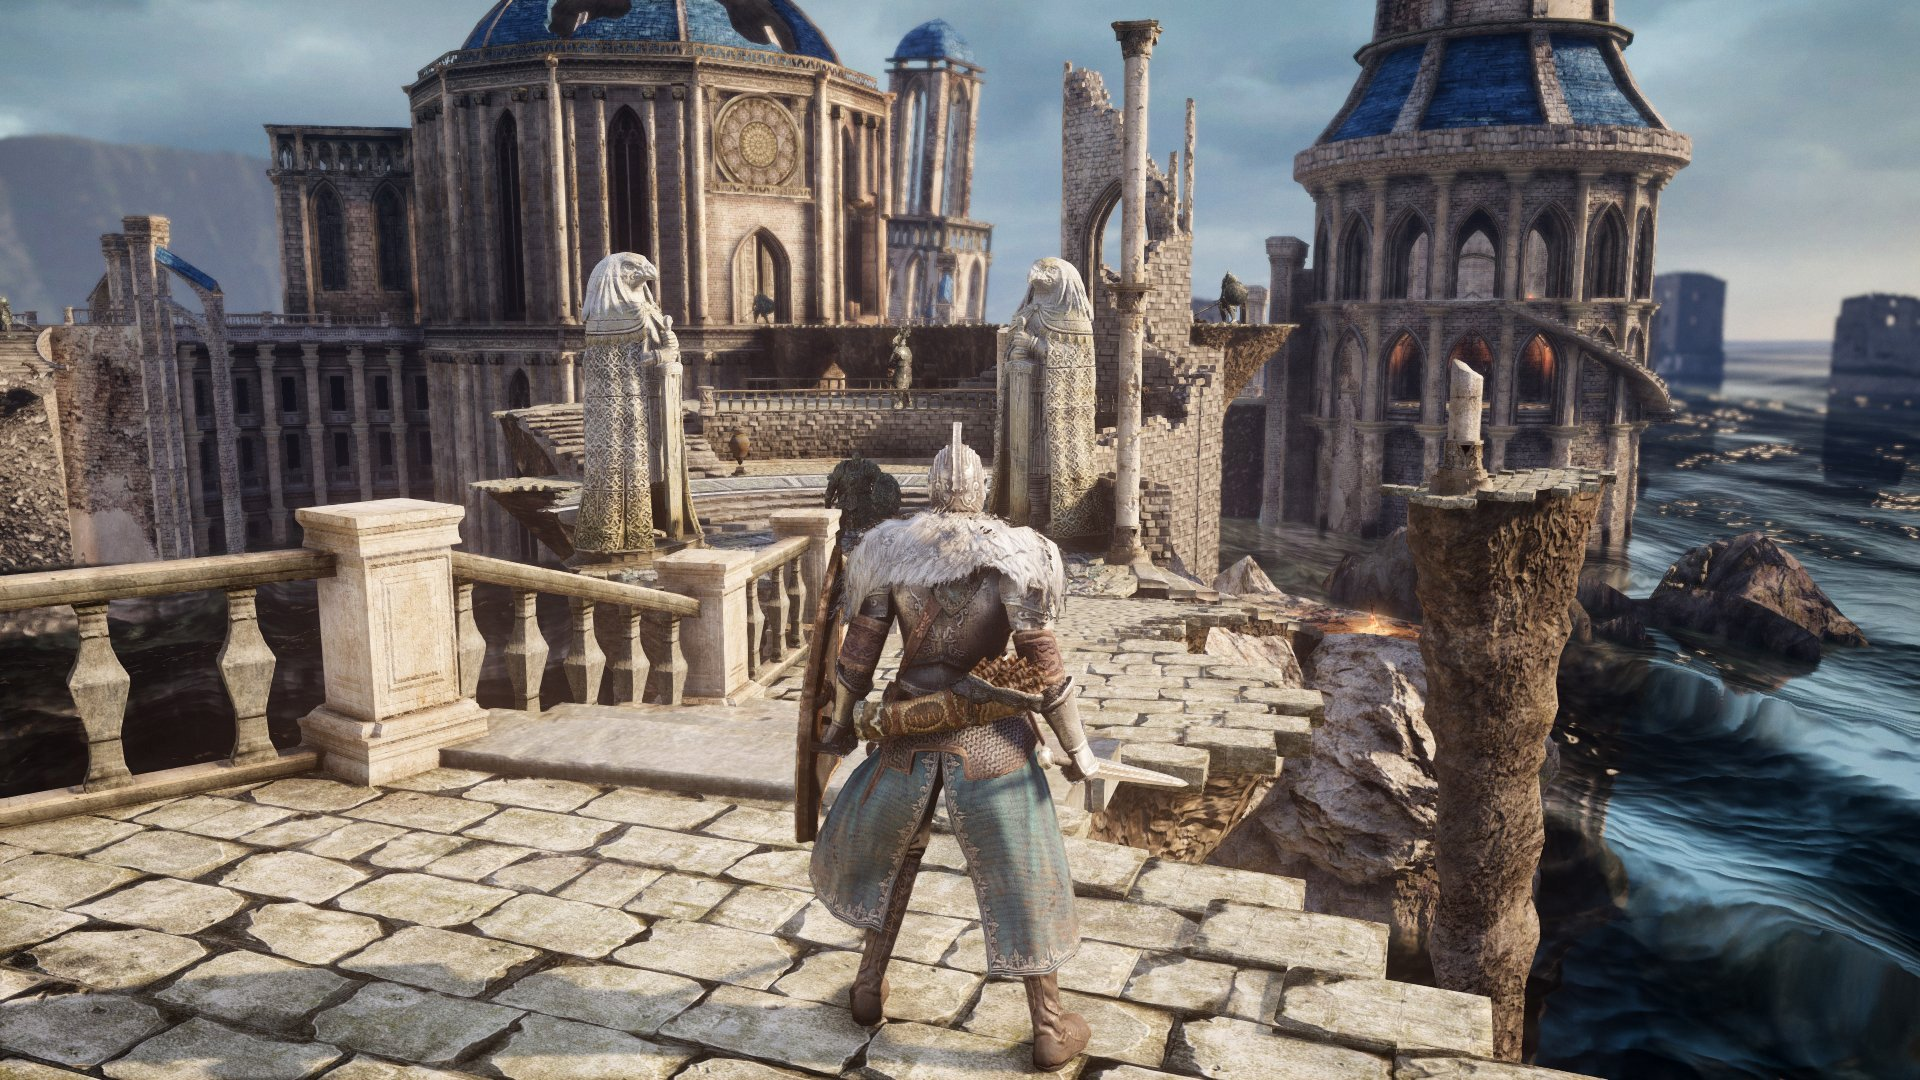 Dark Souls Ii Looks Better Than Ever With This Lighting Mod